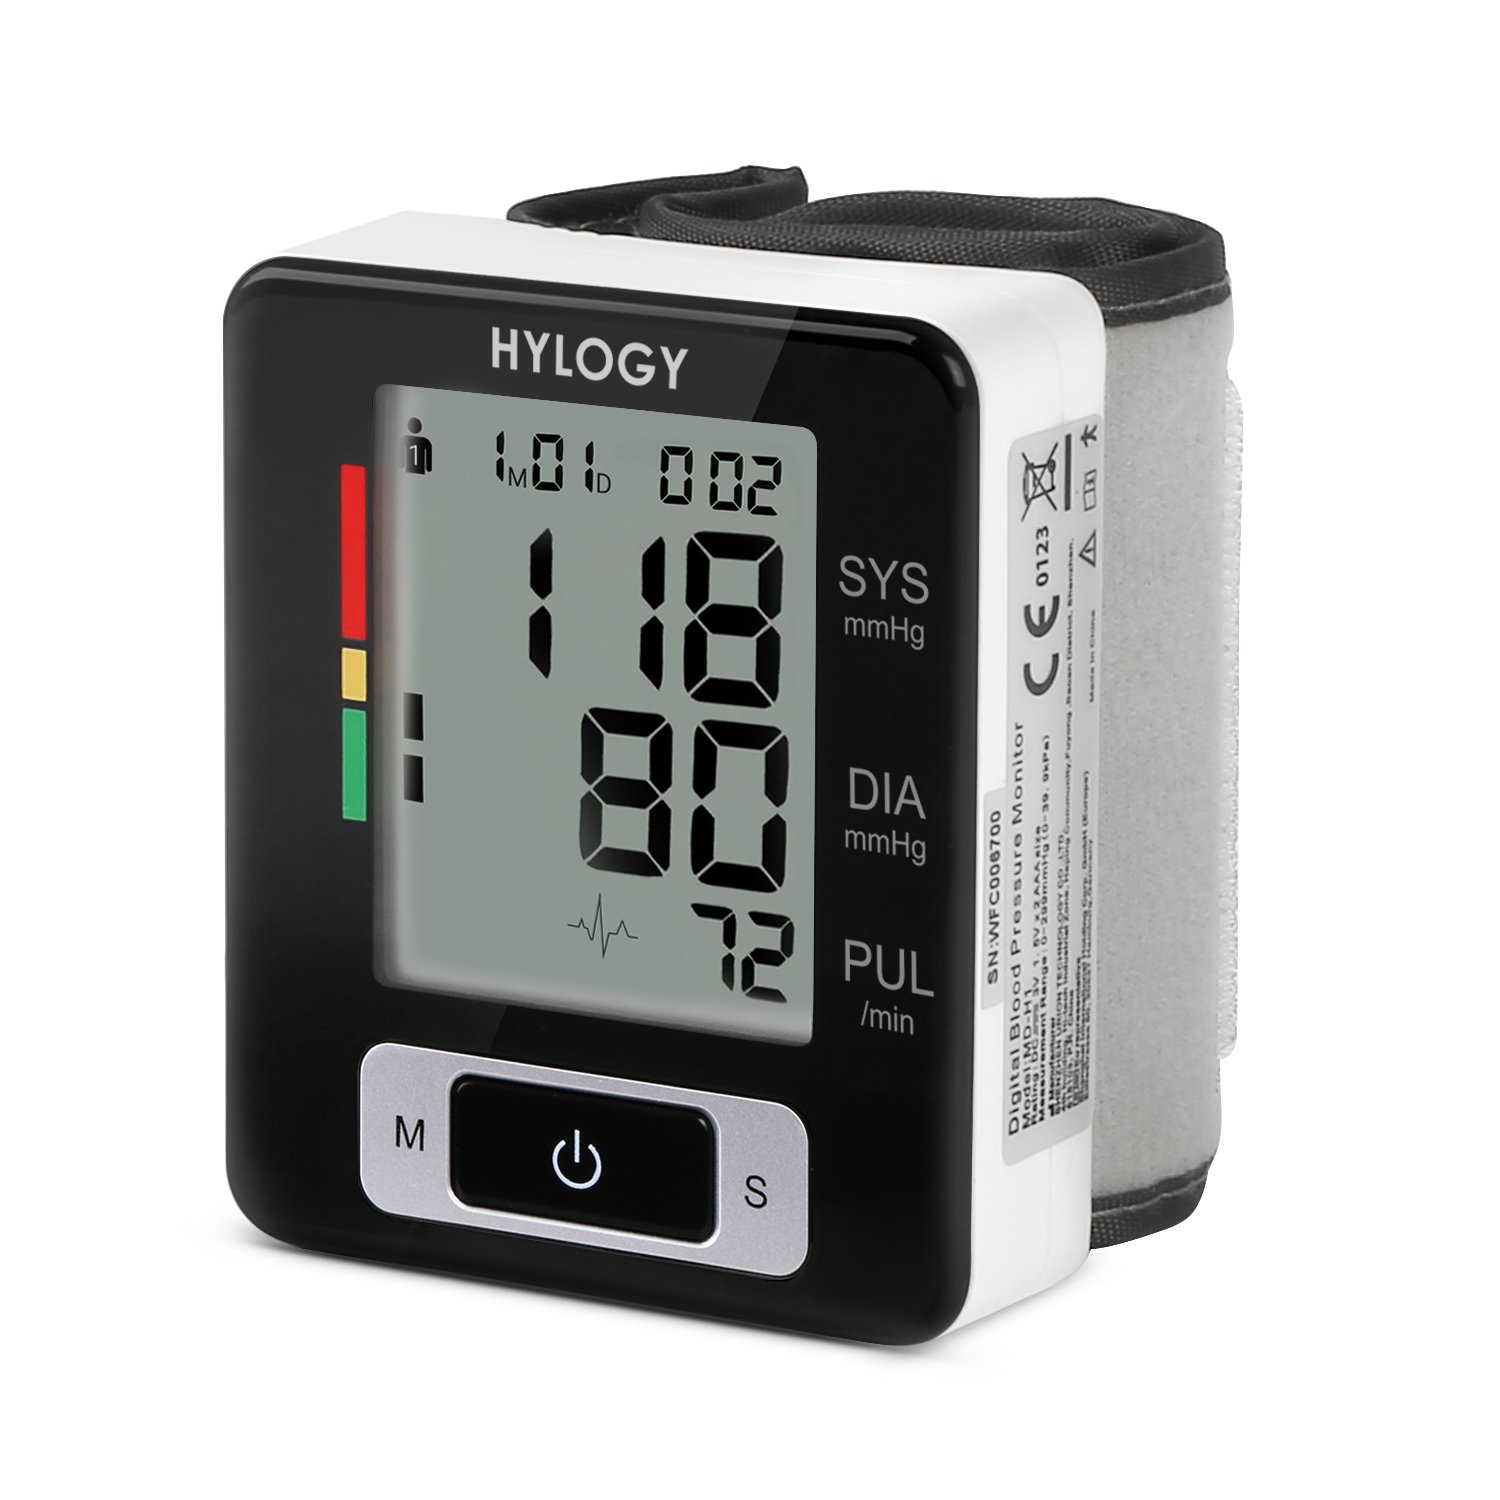 Hylogy Wrist Blood Pressure Monitor